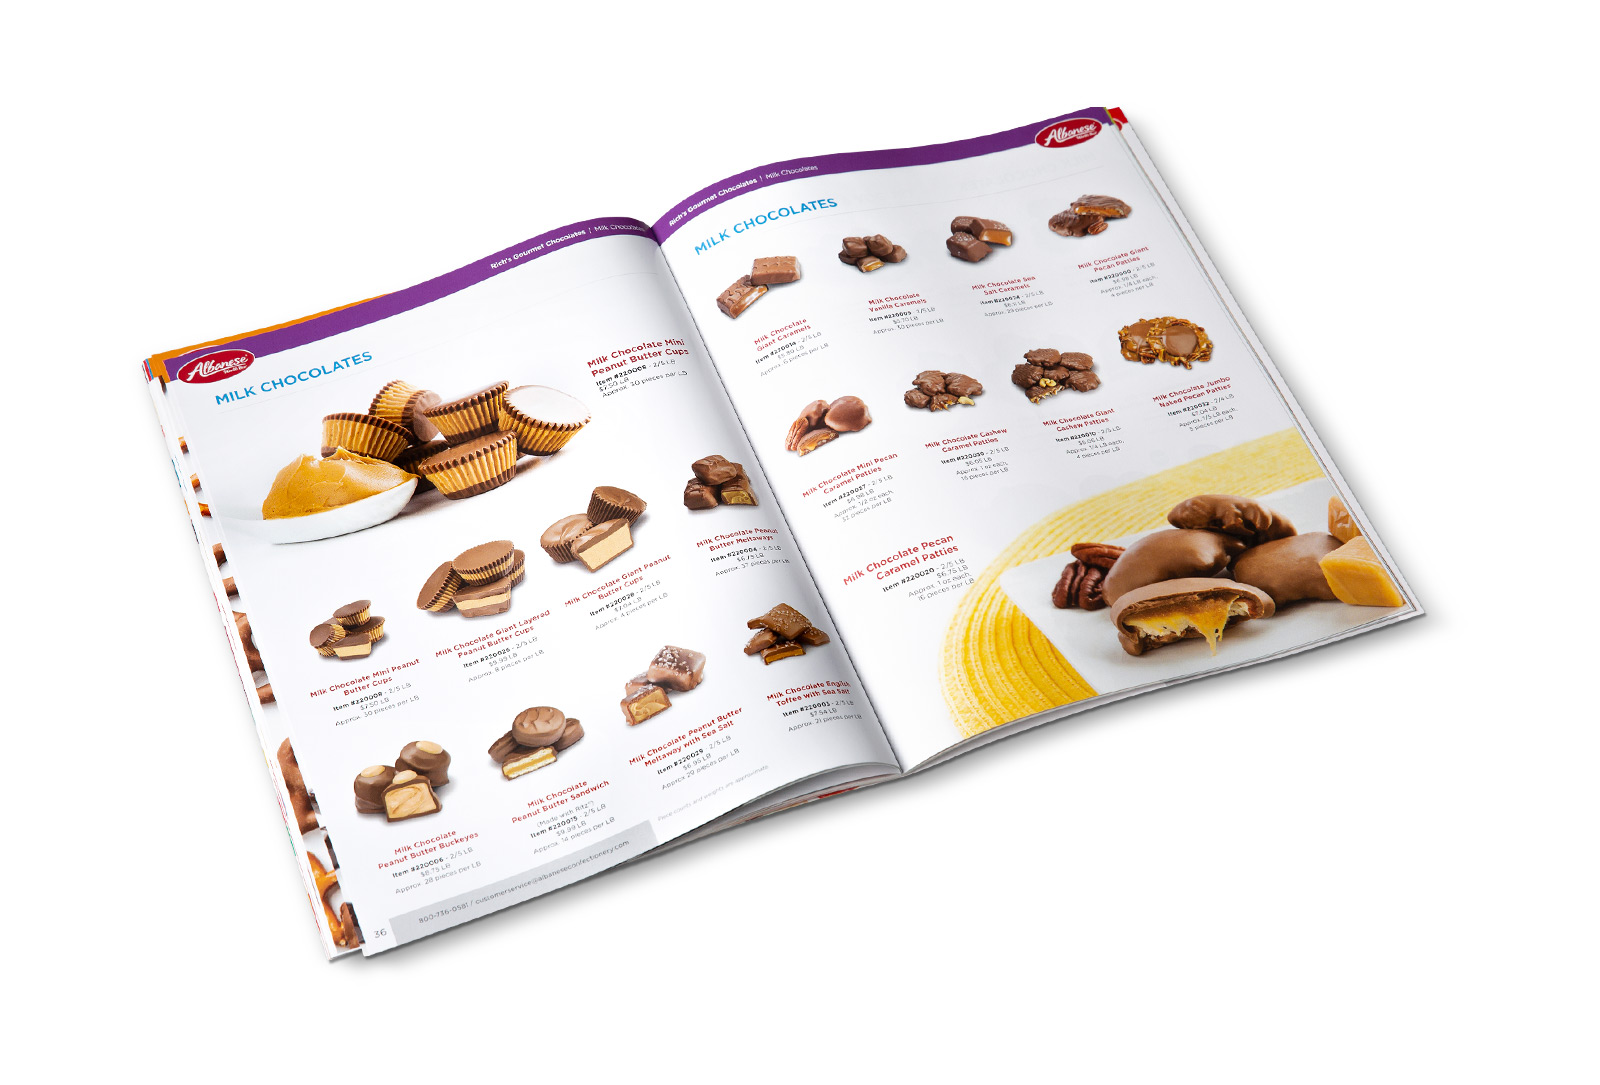 Albanese chocolate products catalog spread design